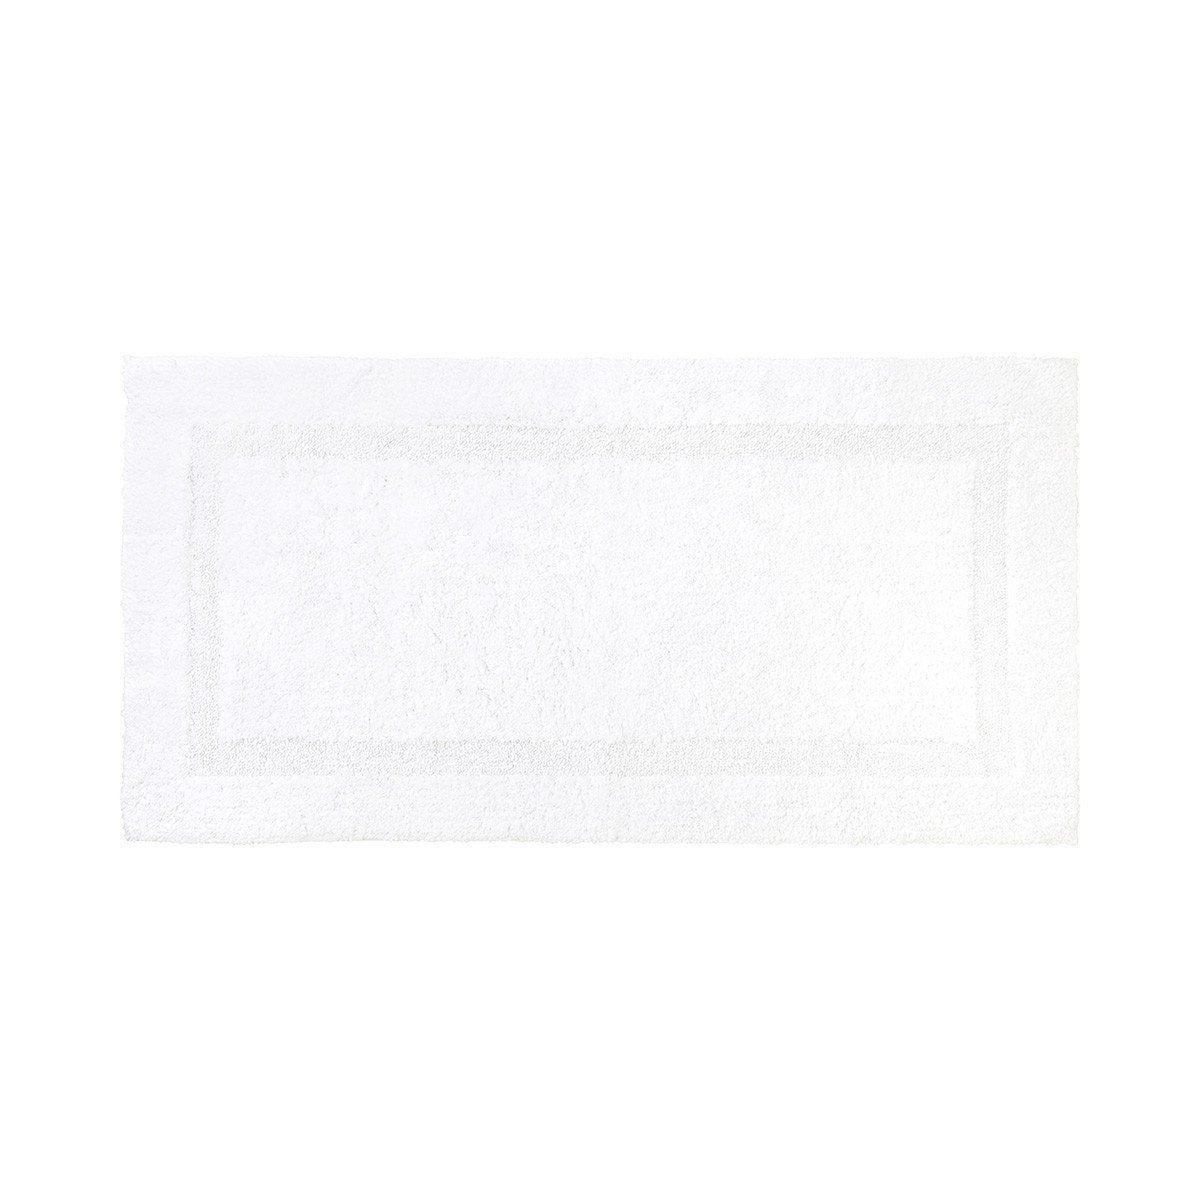 Aquilon Blanc Reversible Bath Rug by Yves Delorme | Fig Linens - White, large bath mat, rug